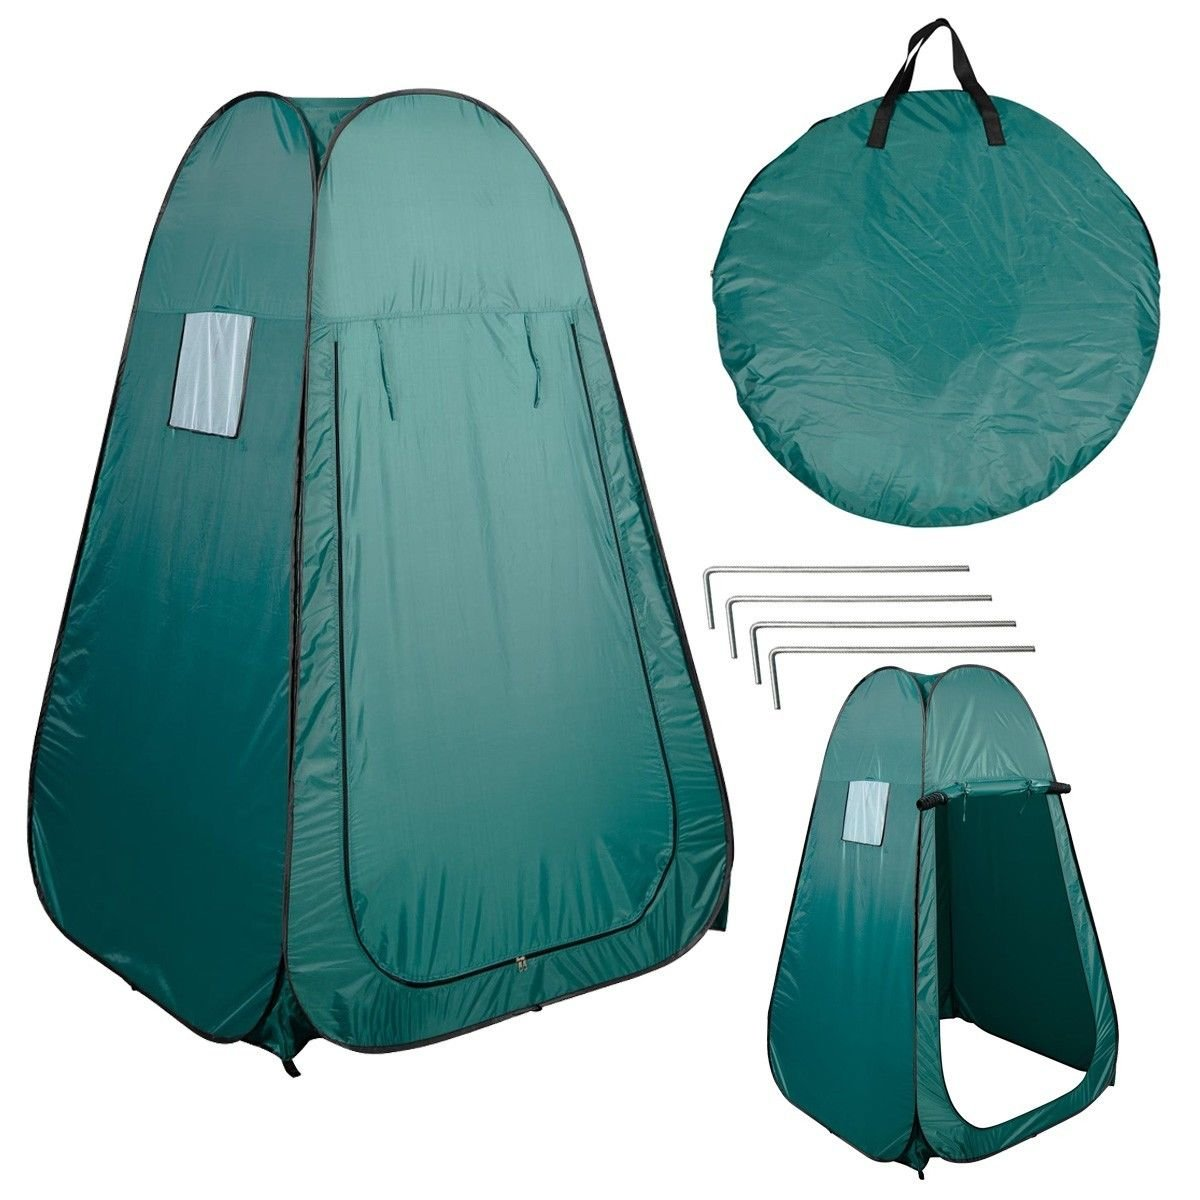 Amazon.com Kseven Portable Pop Up Changing Tent - Green Cabana Fishing Bathing Toilet C&ing Private Dressing Room Polyurethane coated Zipper Door ...  sc 1 st  Amazon.com & Amazon.com: Kseven Portable Pop Up Changing Tent - Green Cabana ...